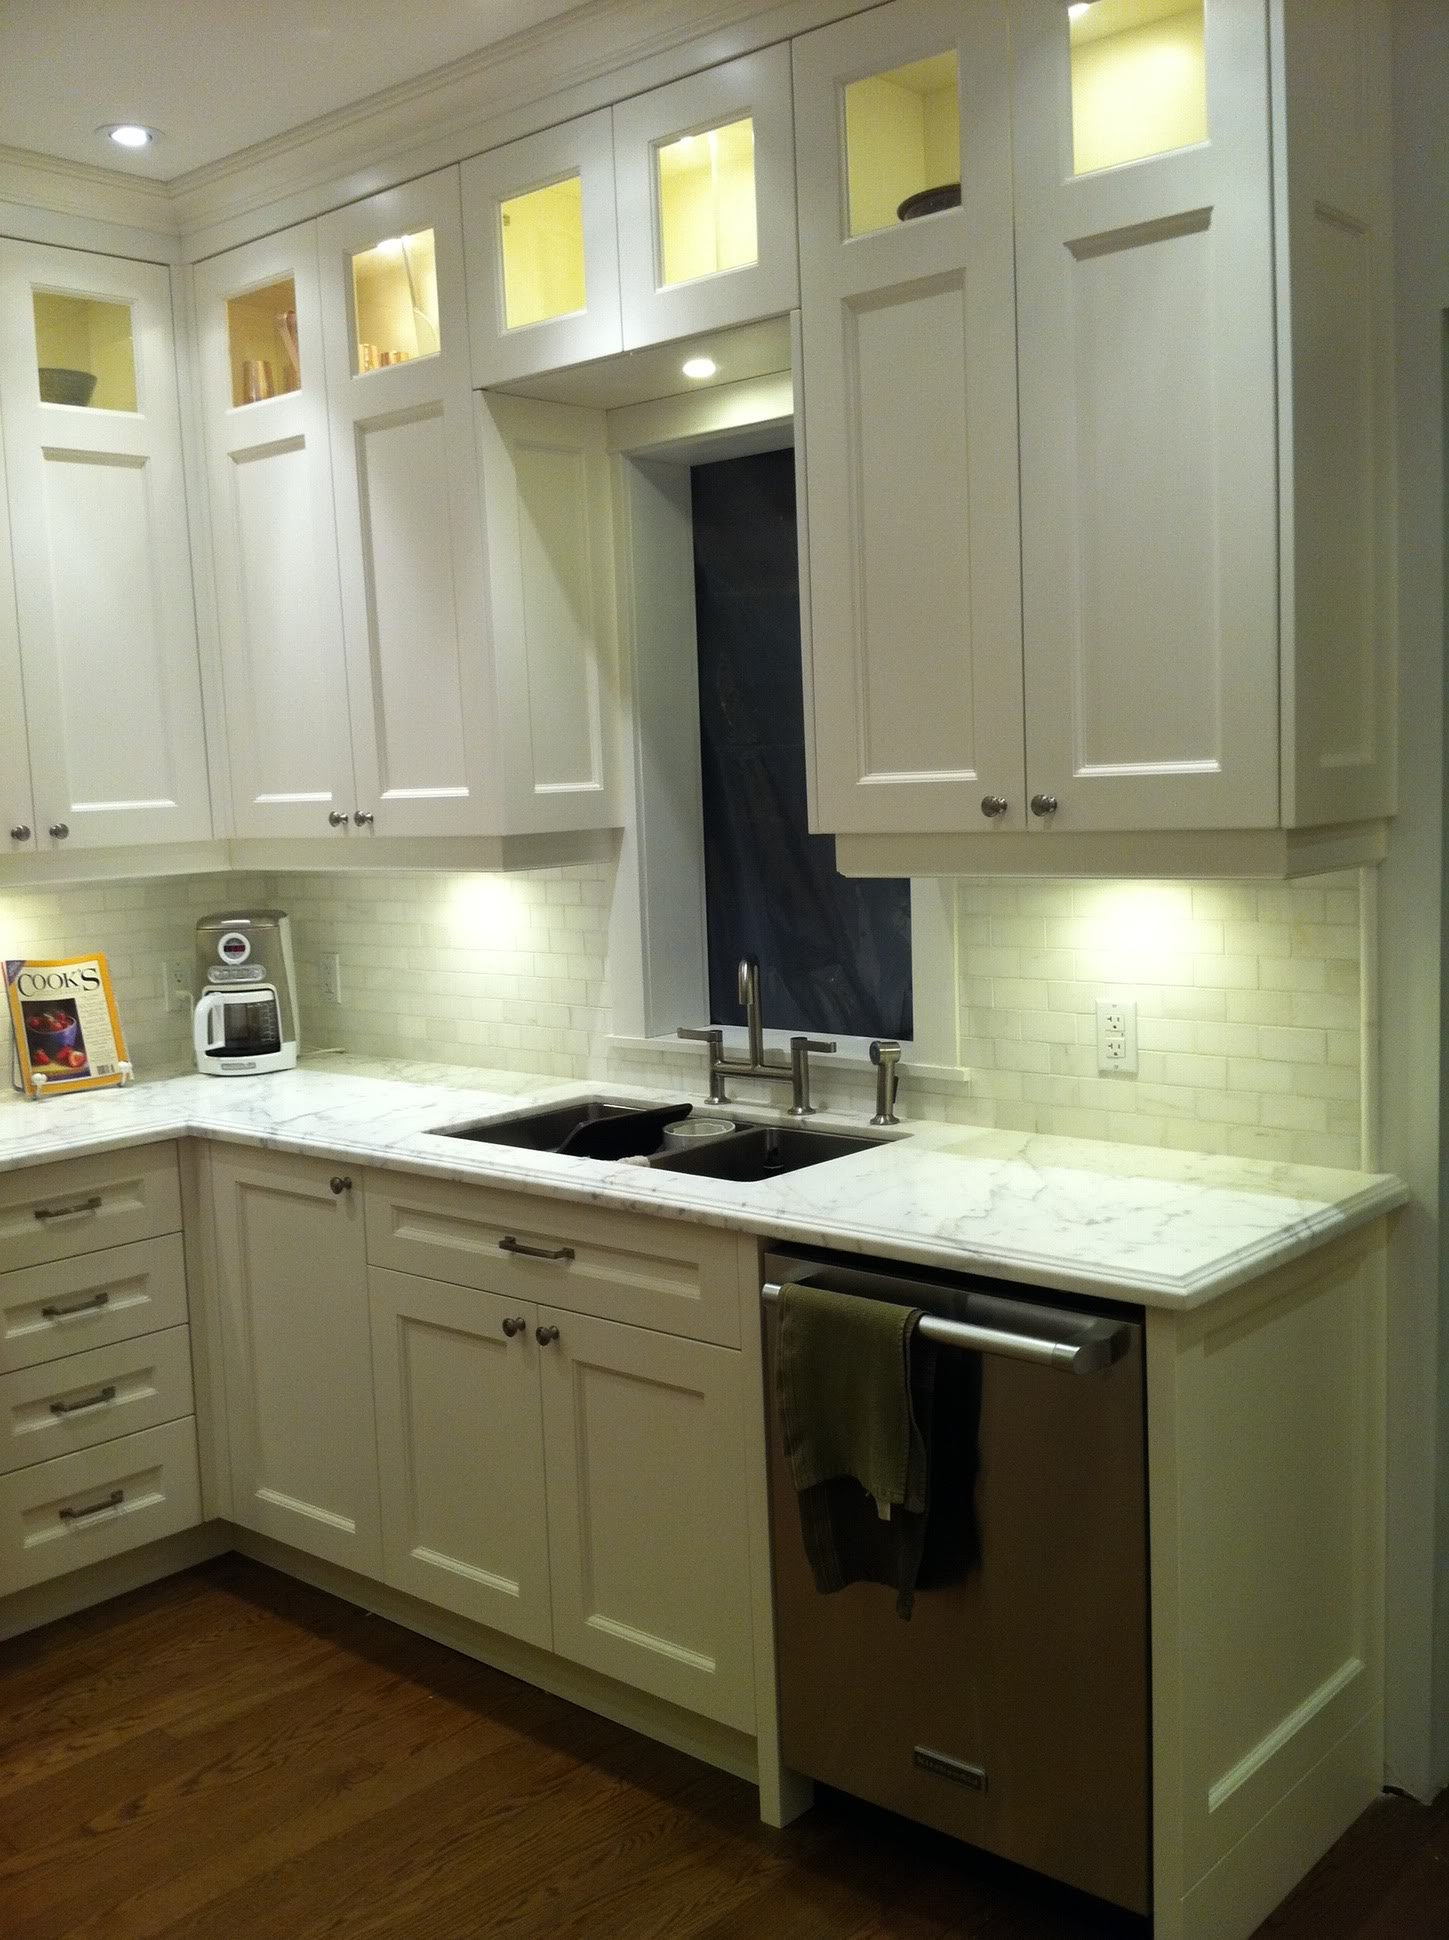 Pictures Of Kitchen Cabinets That Go To The Ceiling